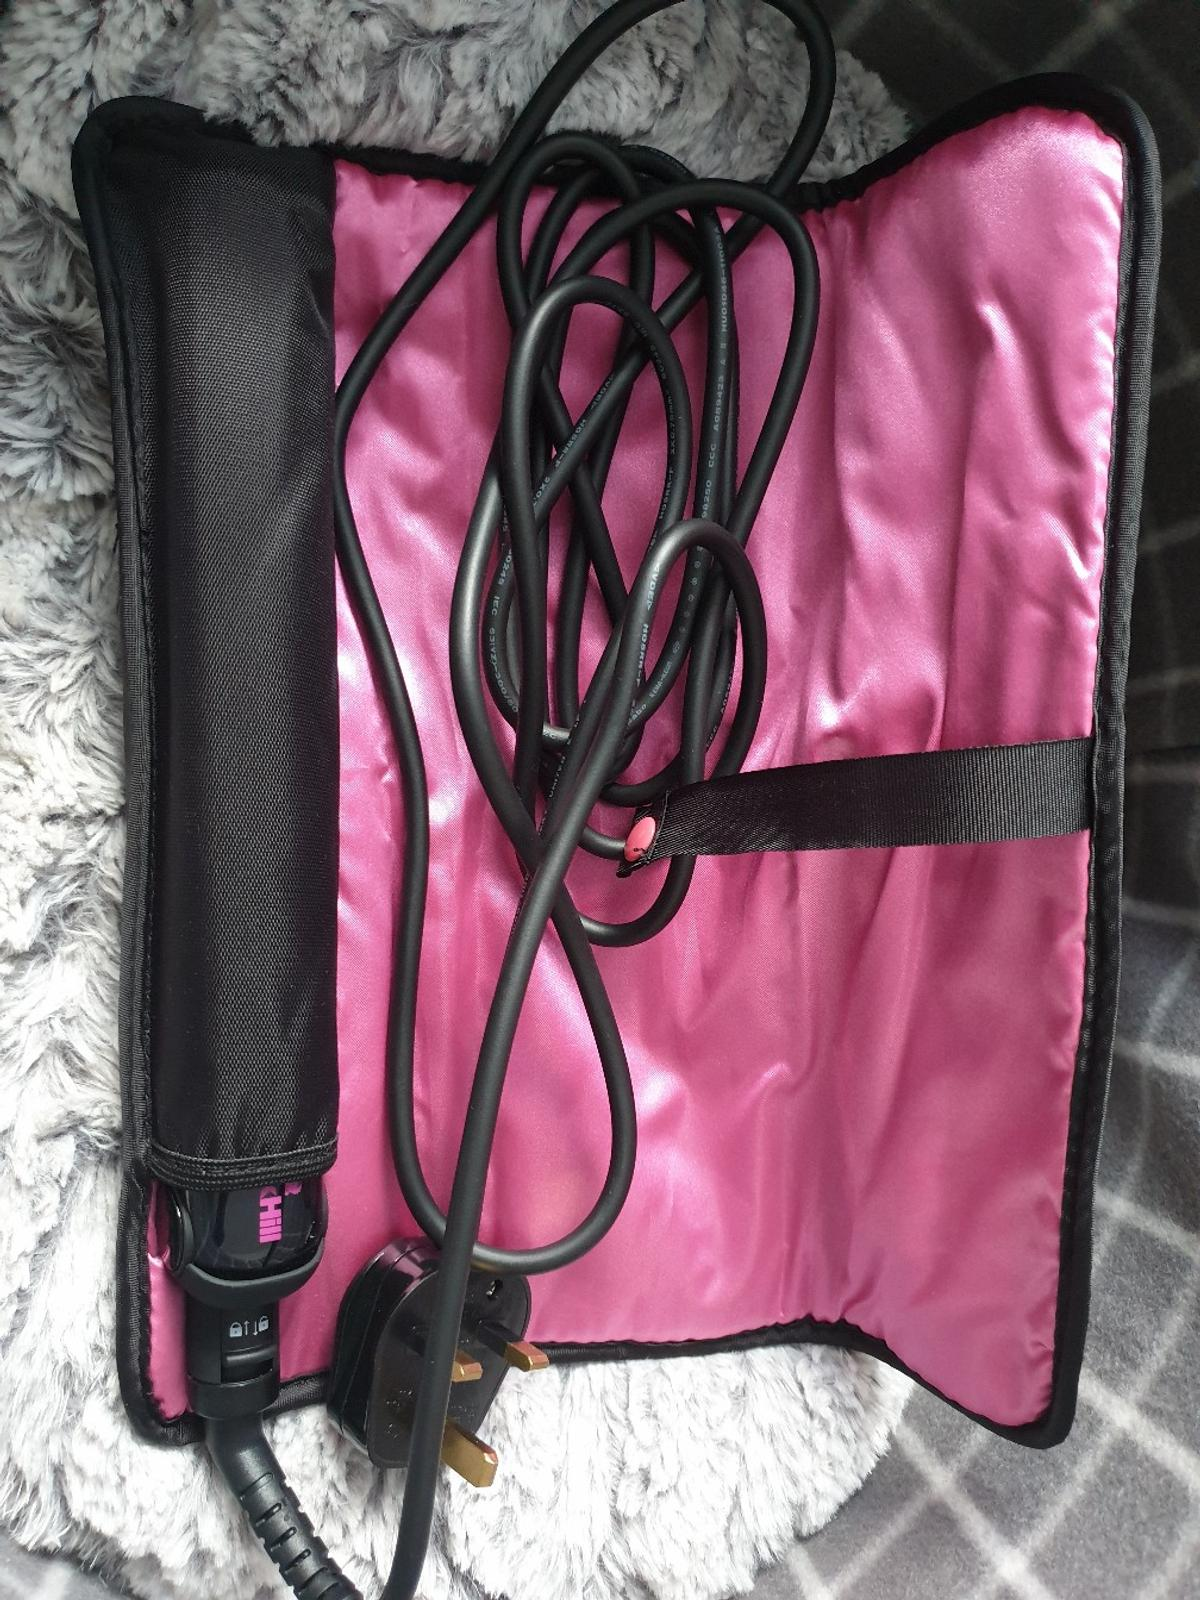 MARK HILL SALON PROFESSIONAL STRAIGHTENERS NEW without box